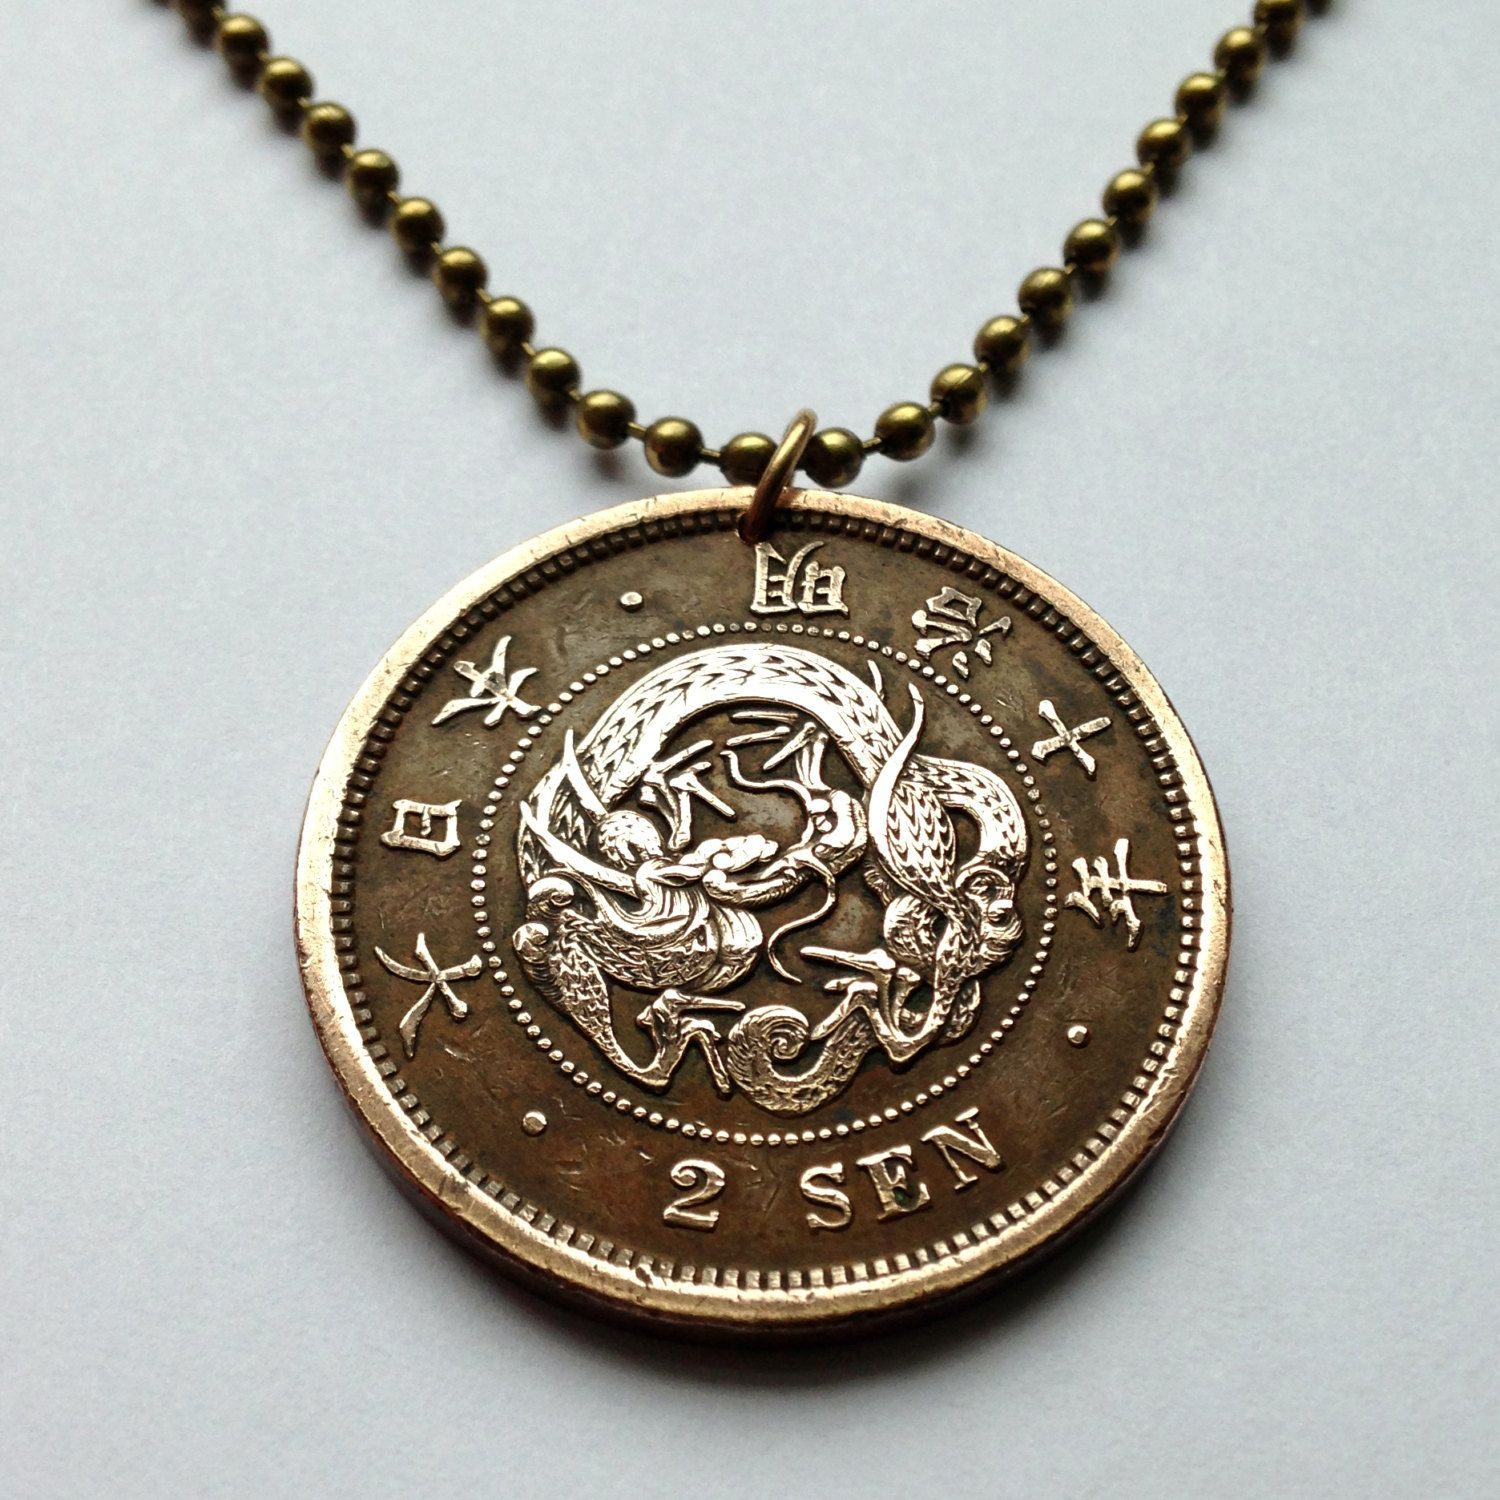 1877 japan 2 sen coin pendant ryu seiryu japanese dragon mythology 1922 japan 5 sen coin pendant charm necklace jewelry blossom flora symmetrical flower design scales leaves mozeypictures Images